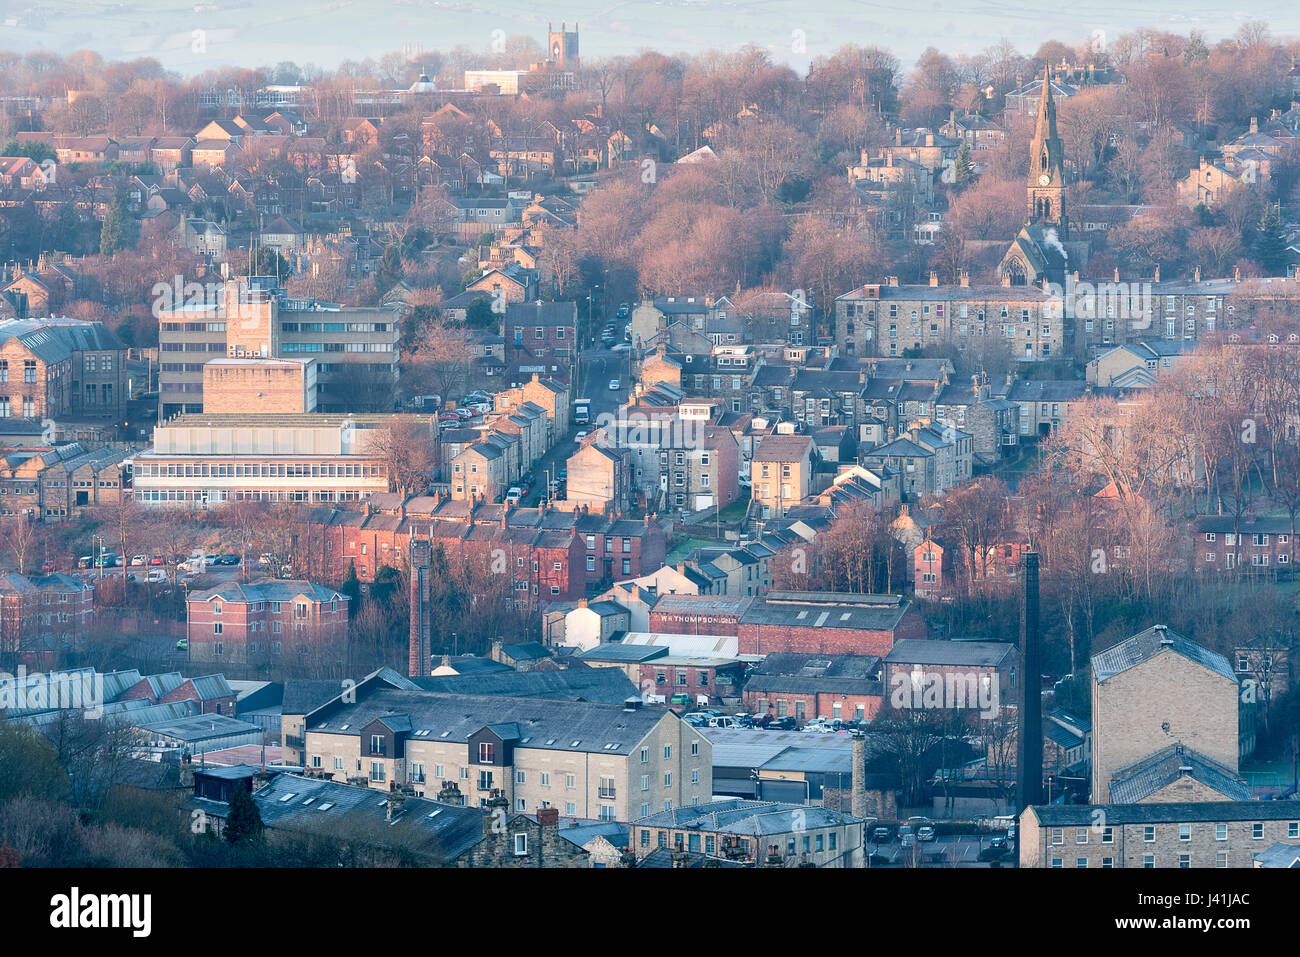 Elevated view of Dewsbury in the morning with church and mill chimneys - Stock Image